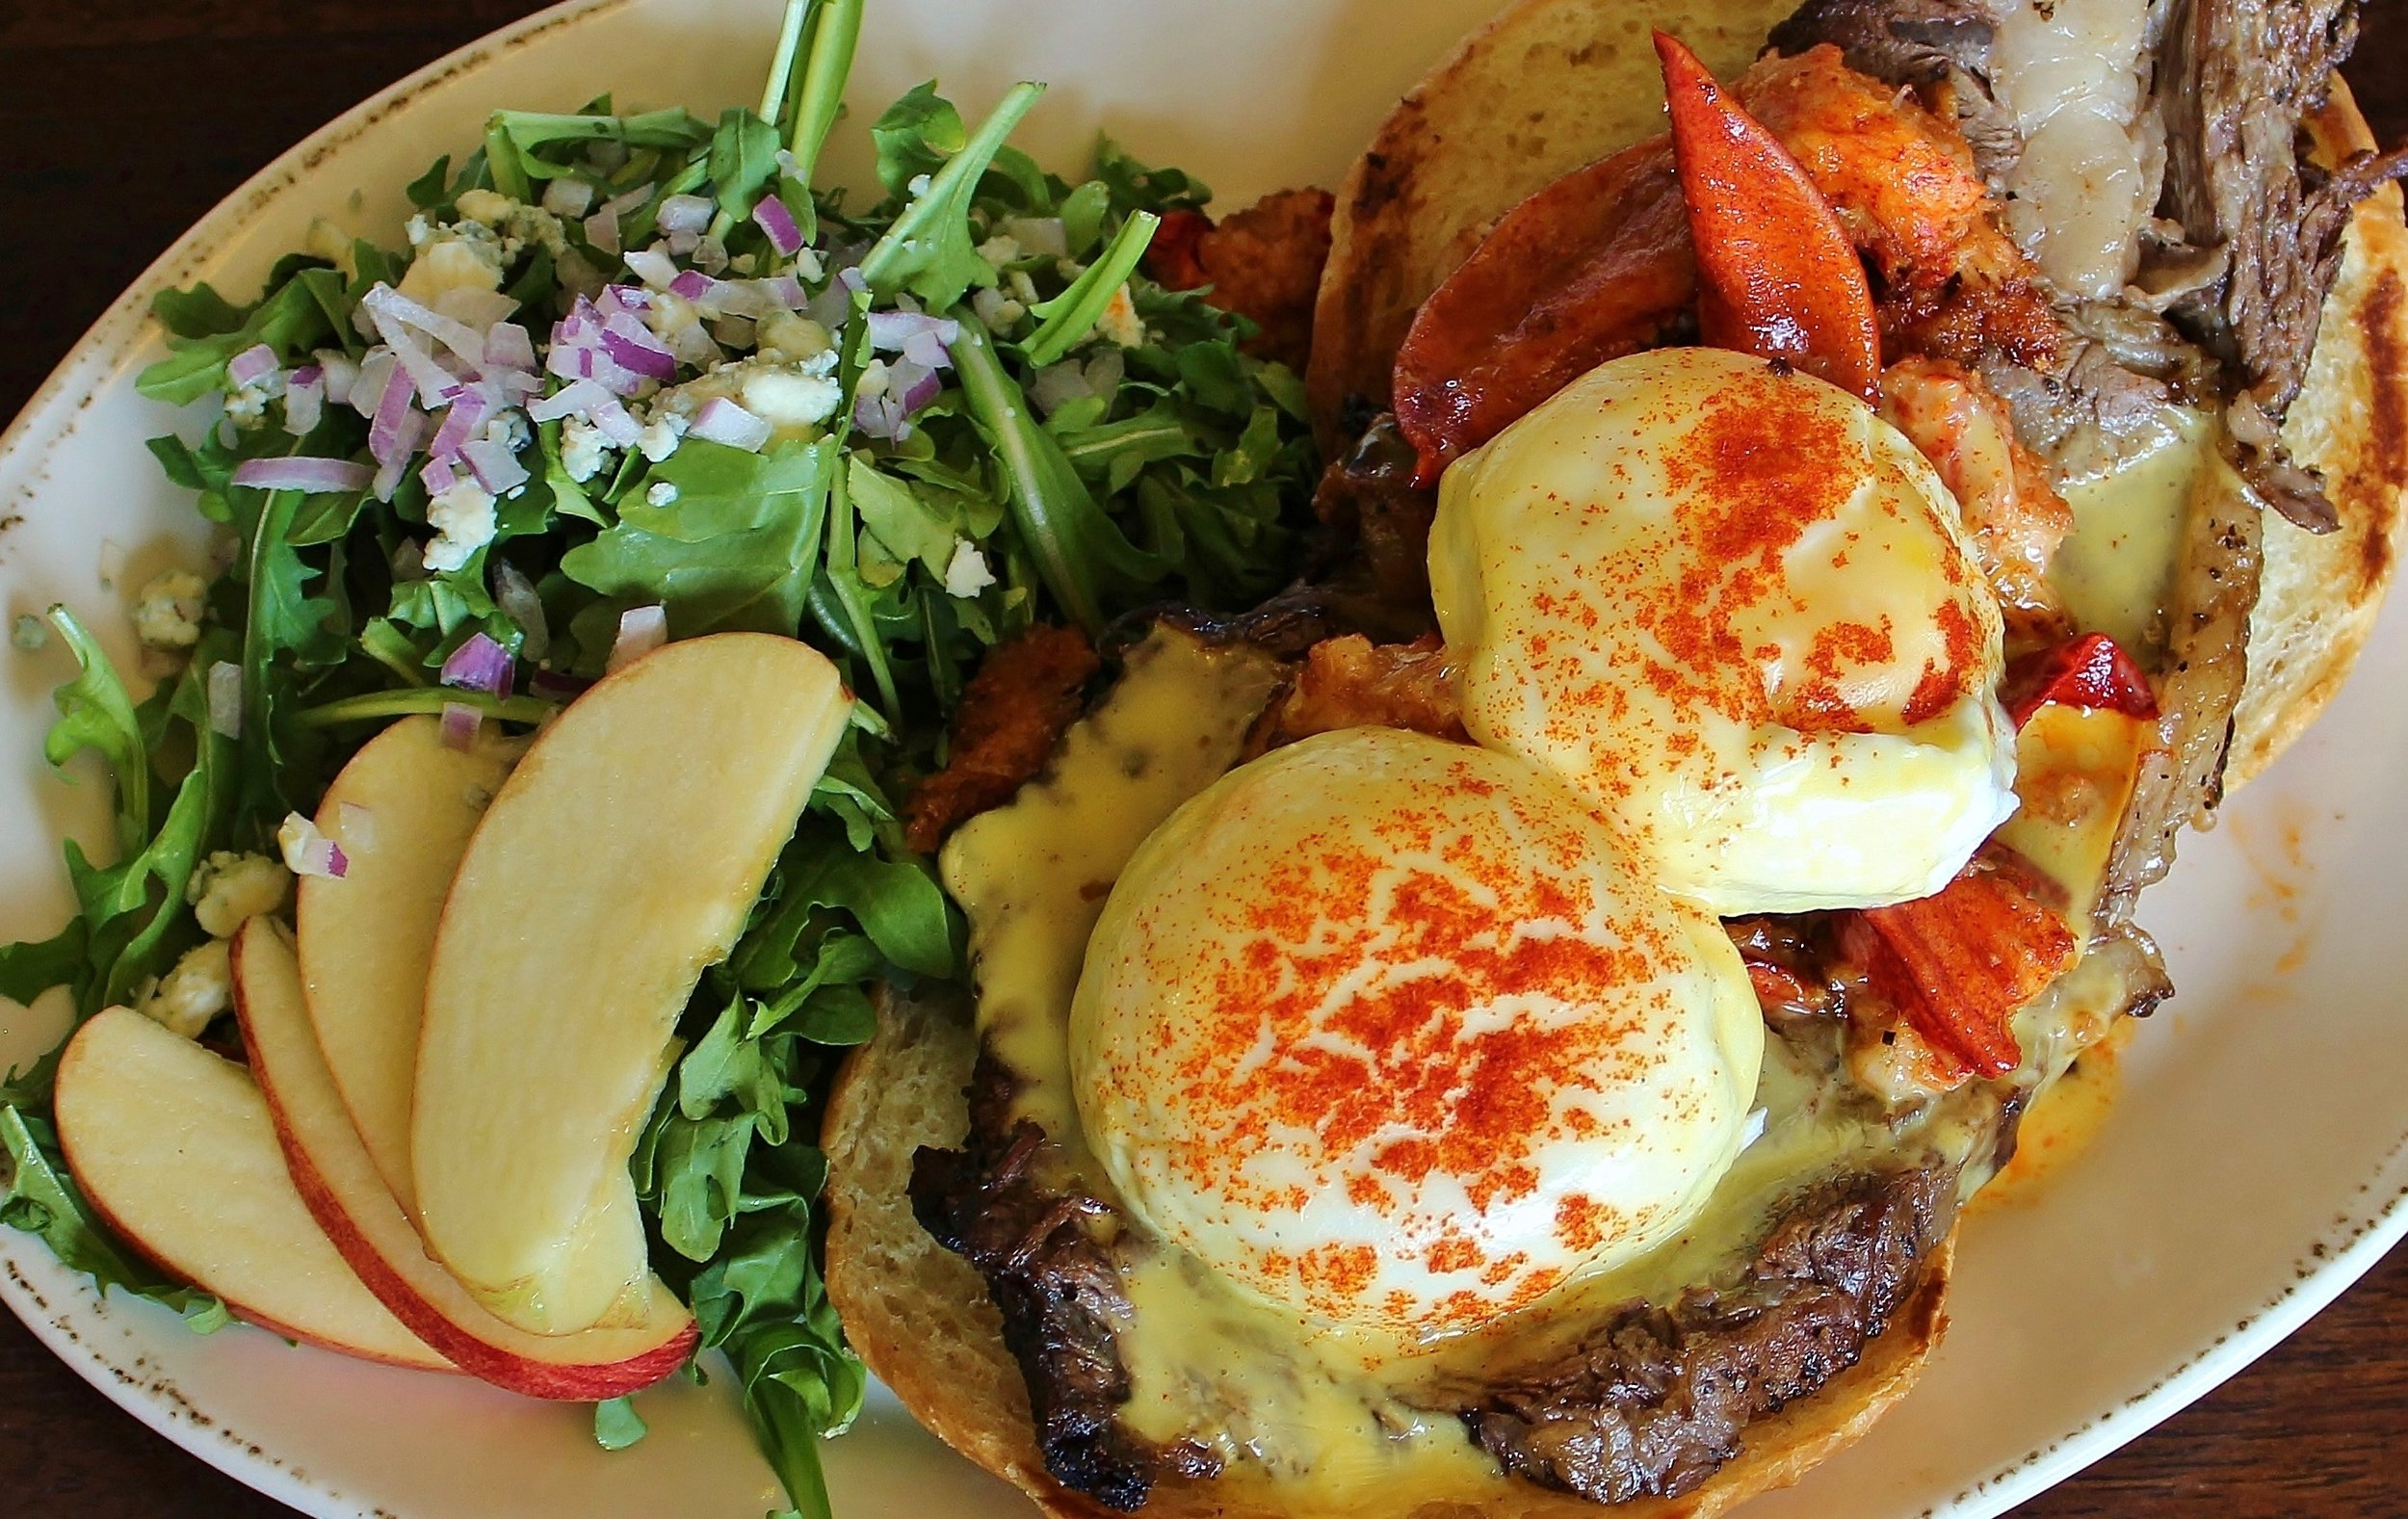 Surf & Turf Benedict - Toasted Croissant with Lobster Claw Meat & Prime Rib (medium rare) topped with Champagne Hollandaise. With choice of side; Tots, Arugula Salad, or Fruit$17.99